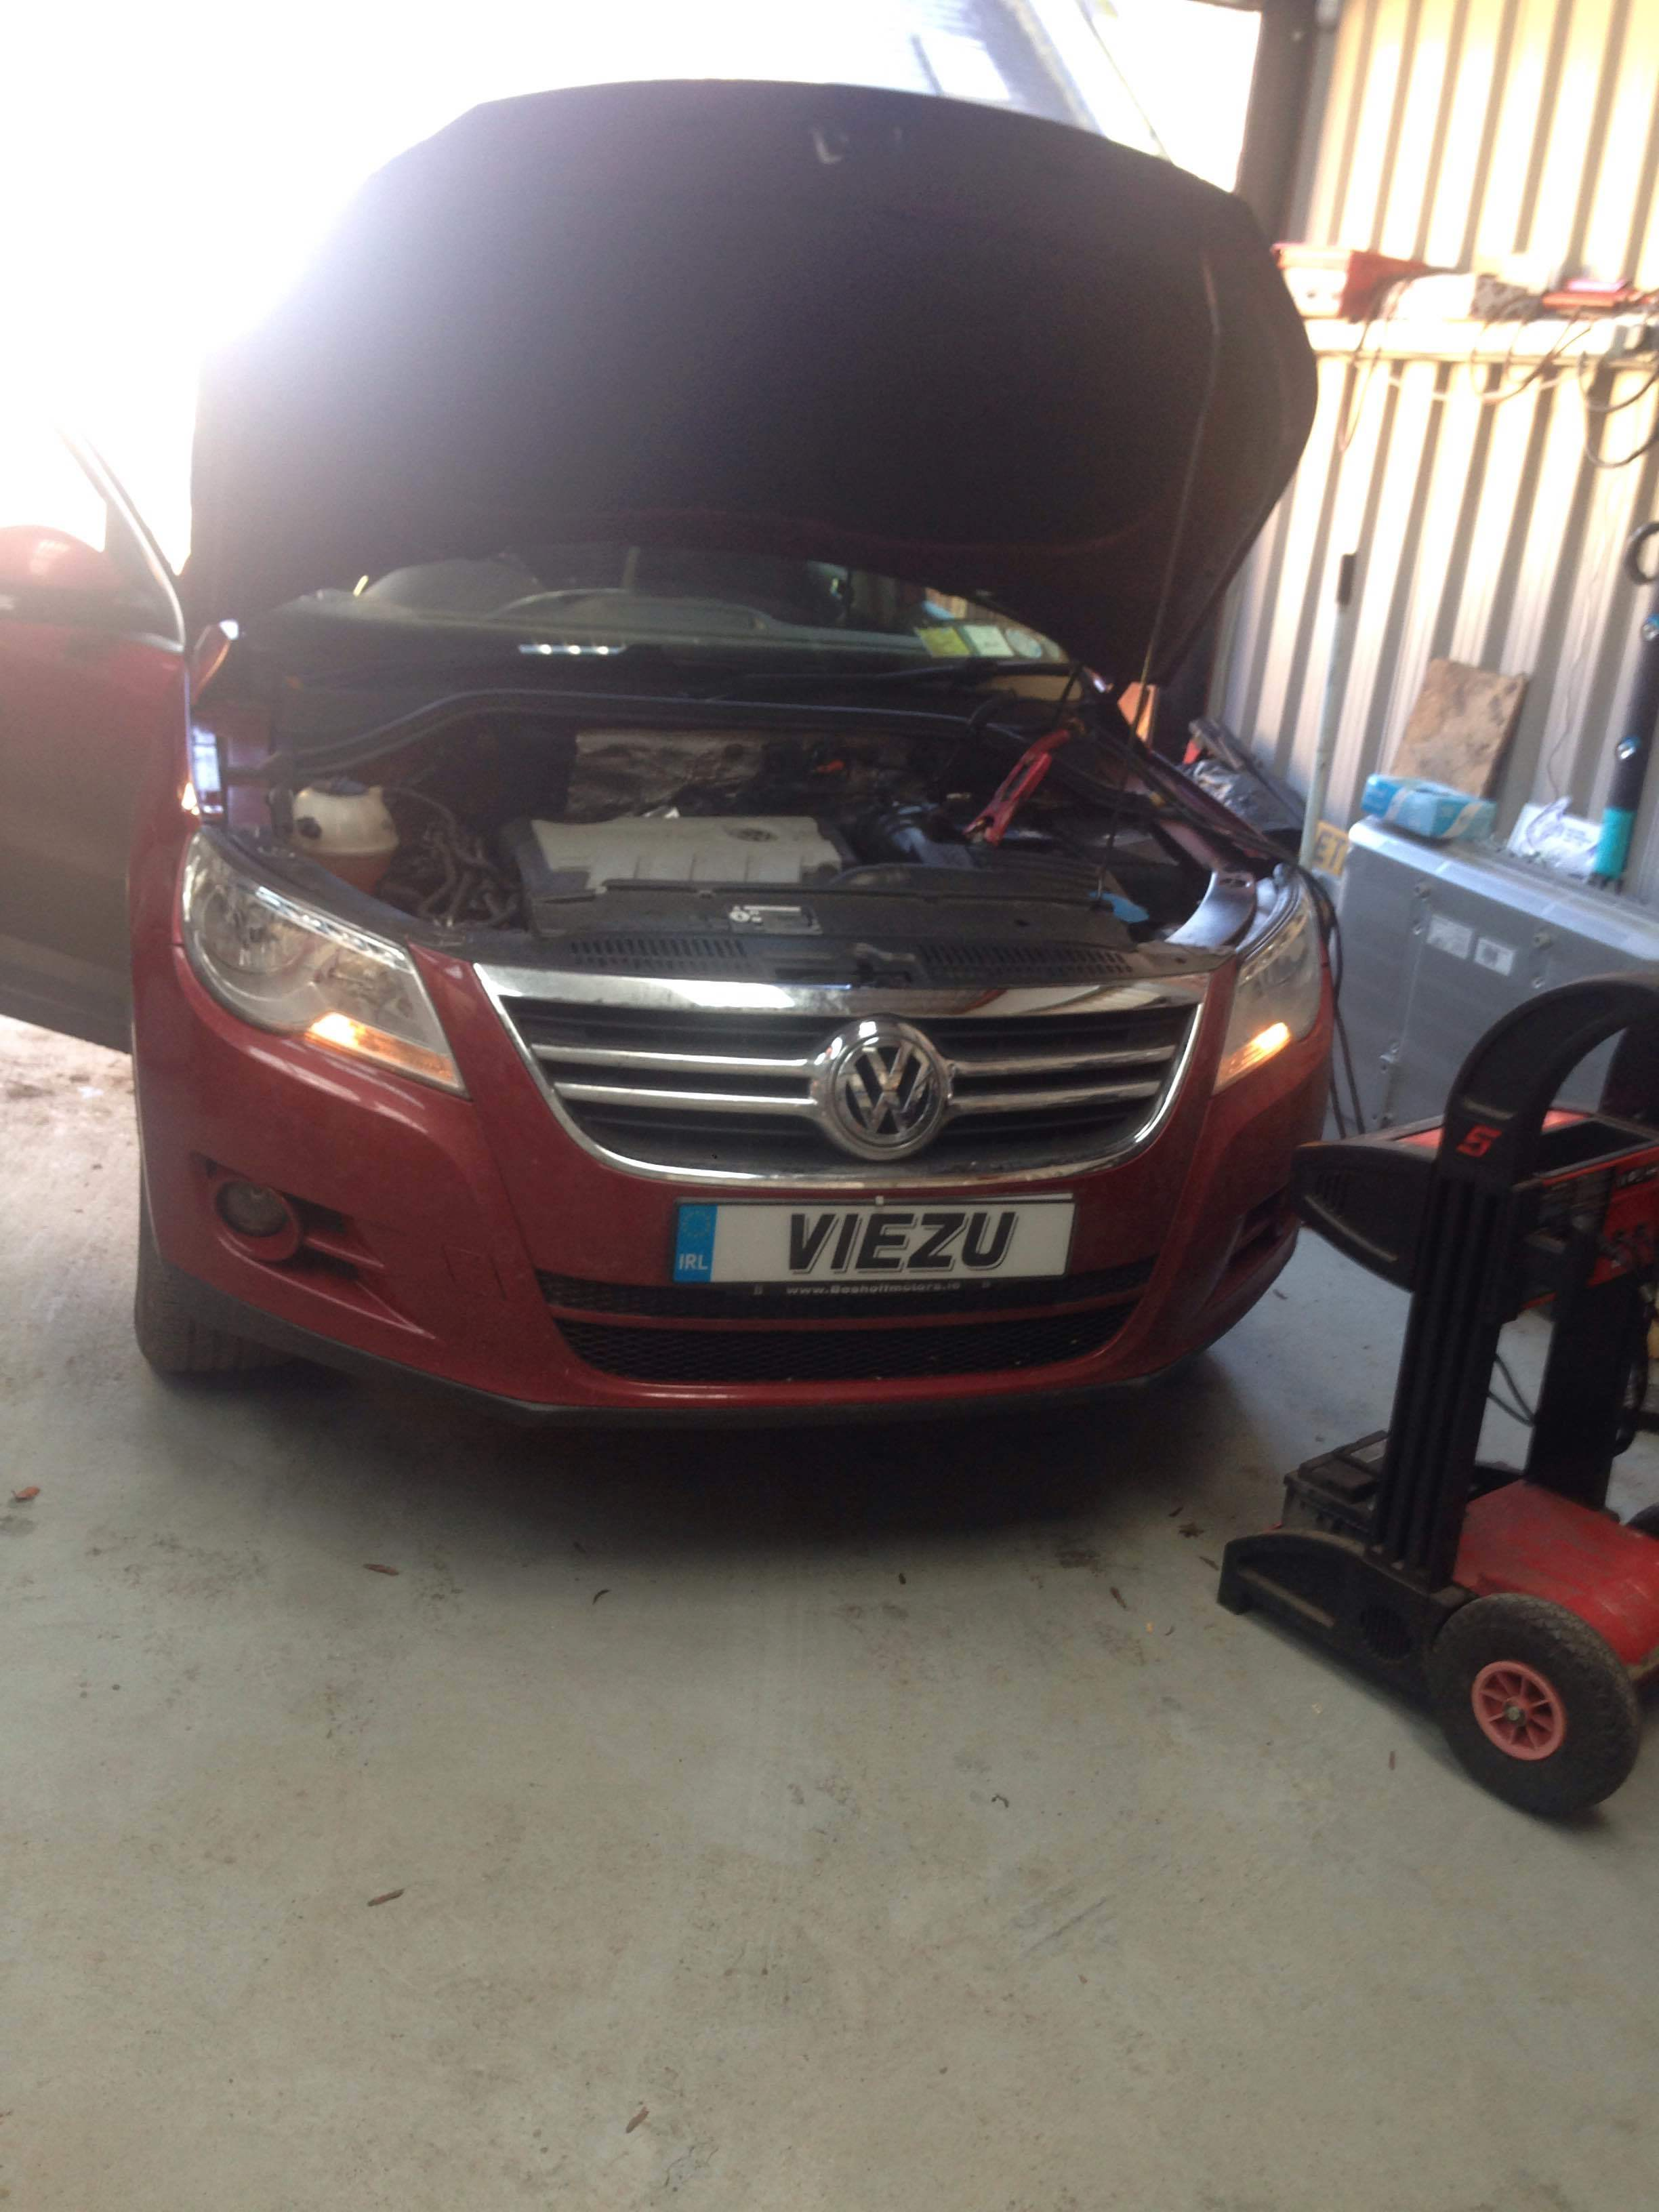 vw tiguan ecu remapping.JPG